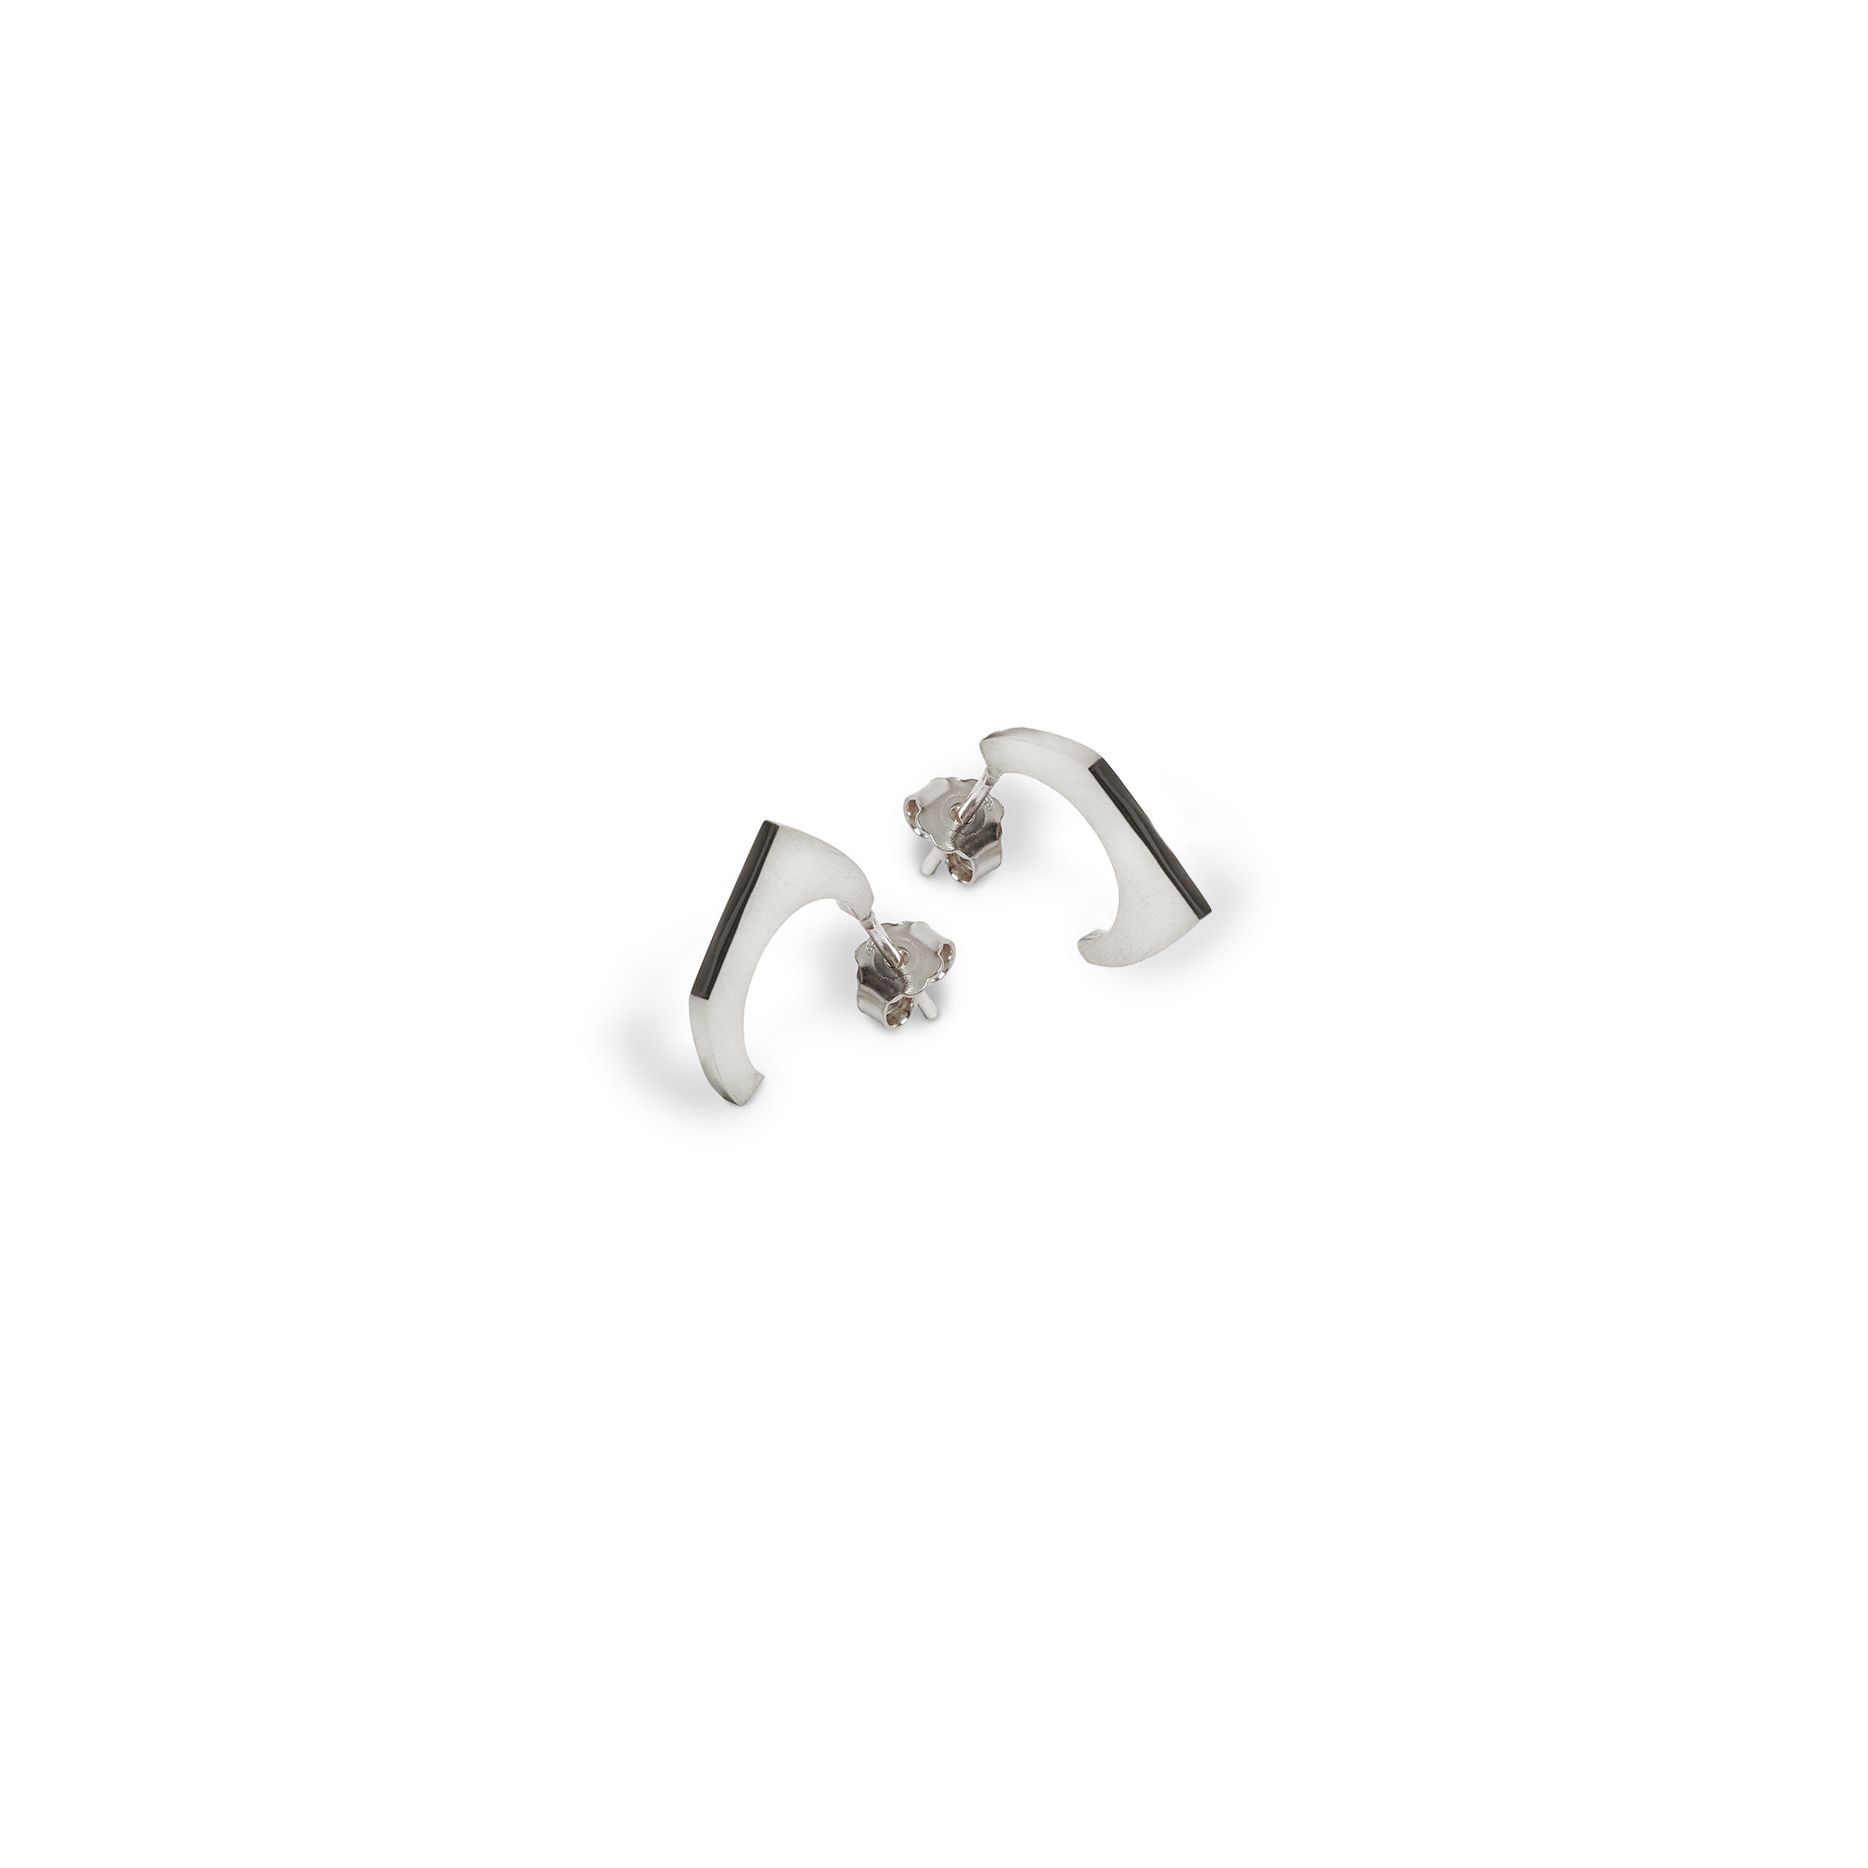 1 element 'Congiunzioni' earrings Silver earrings